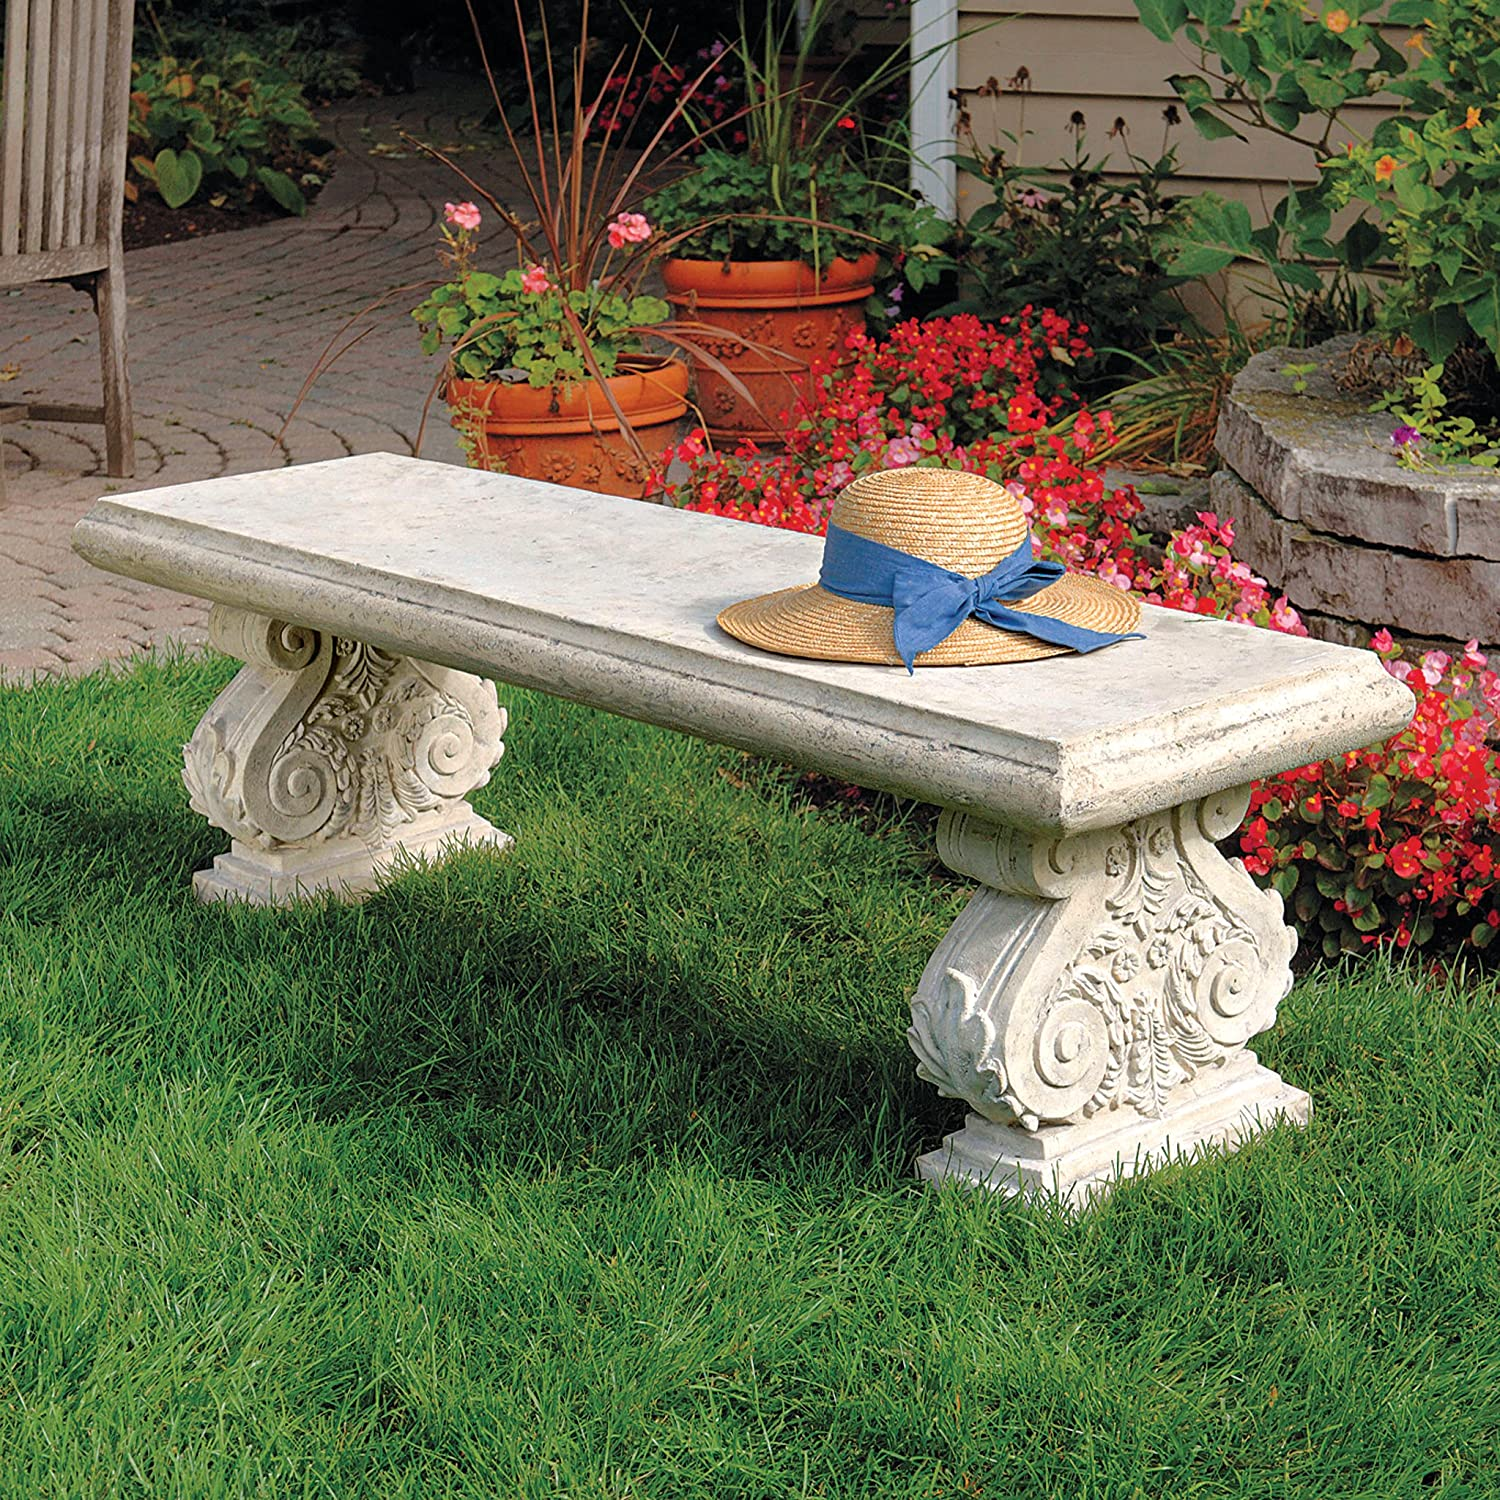 ca outdoor dp bench garden lawn lucia selling best patio amazon